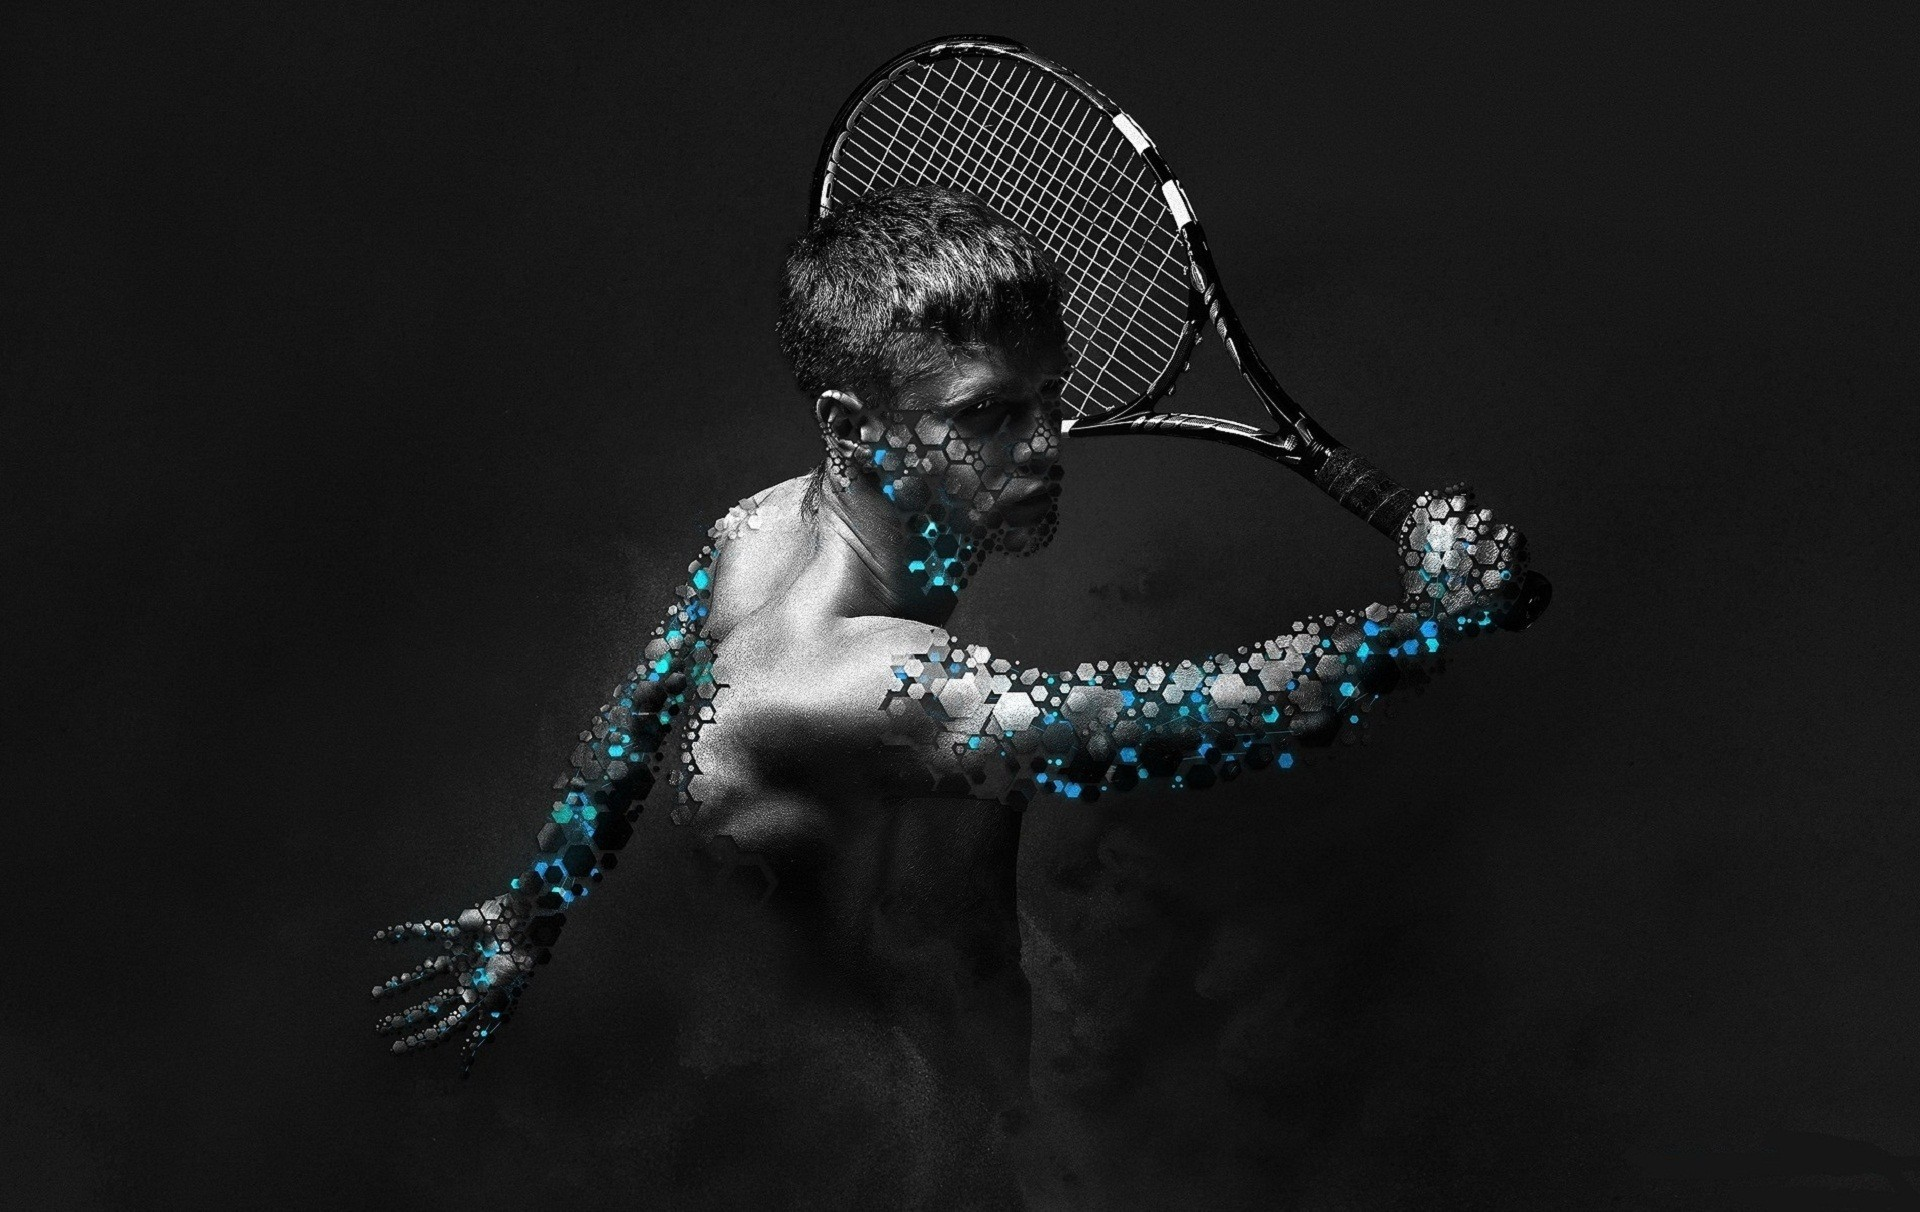 Sports Men tennis artwork